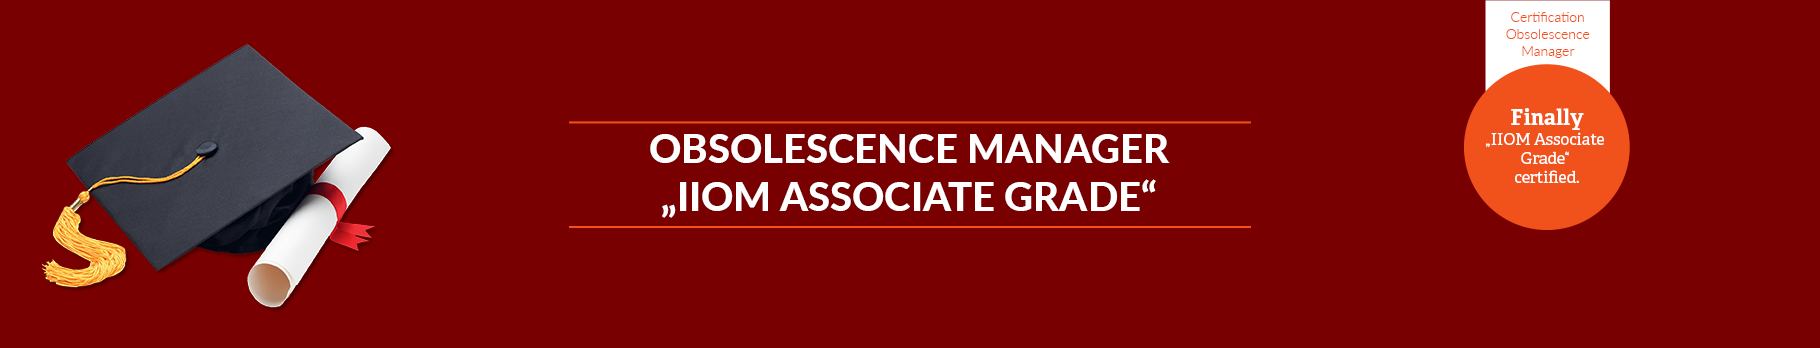 """IIOM Certification"" Obsolescence Manager"